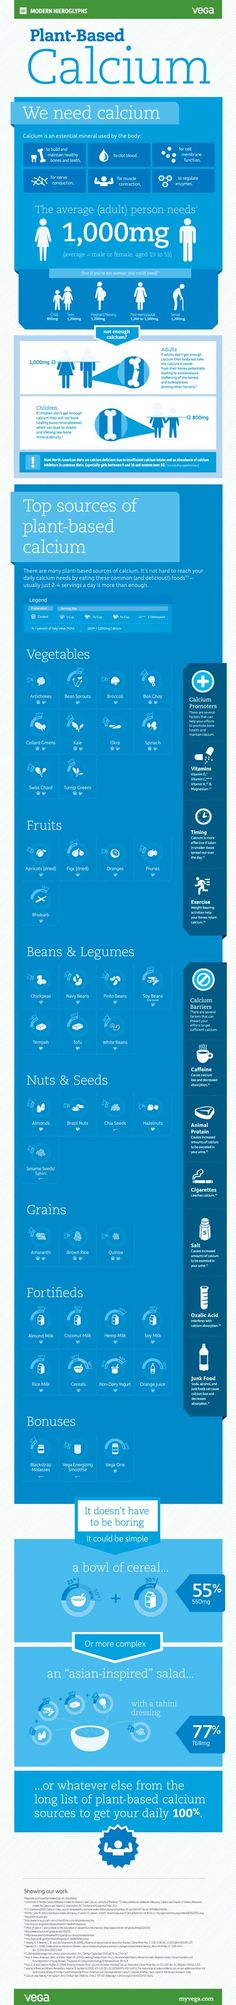 Top Sources of Calcium for Vegans (Infographic)